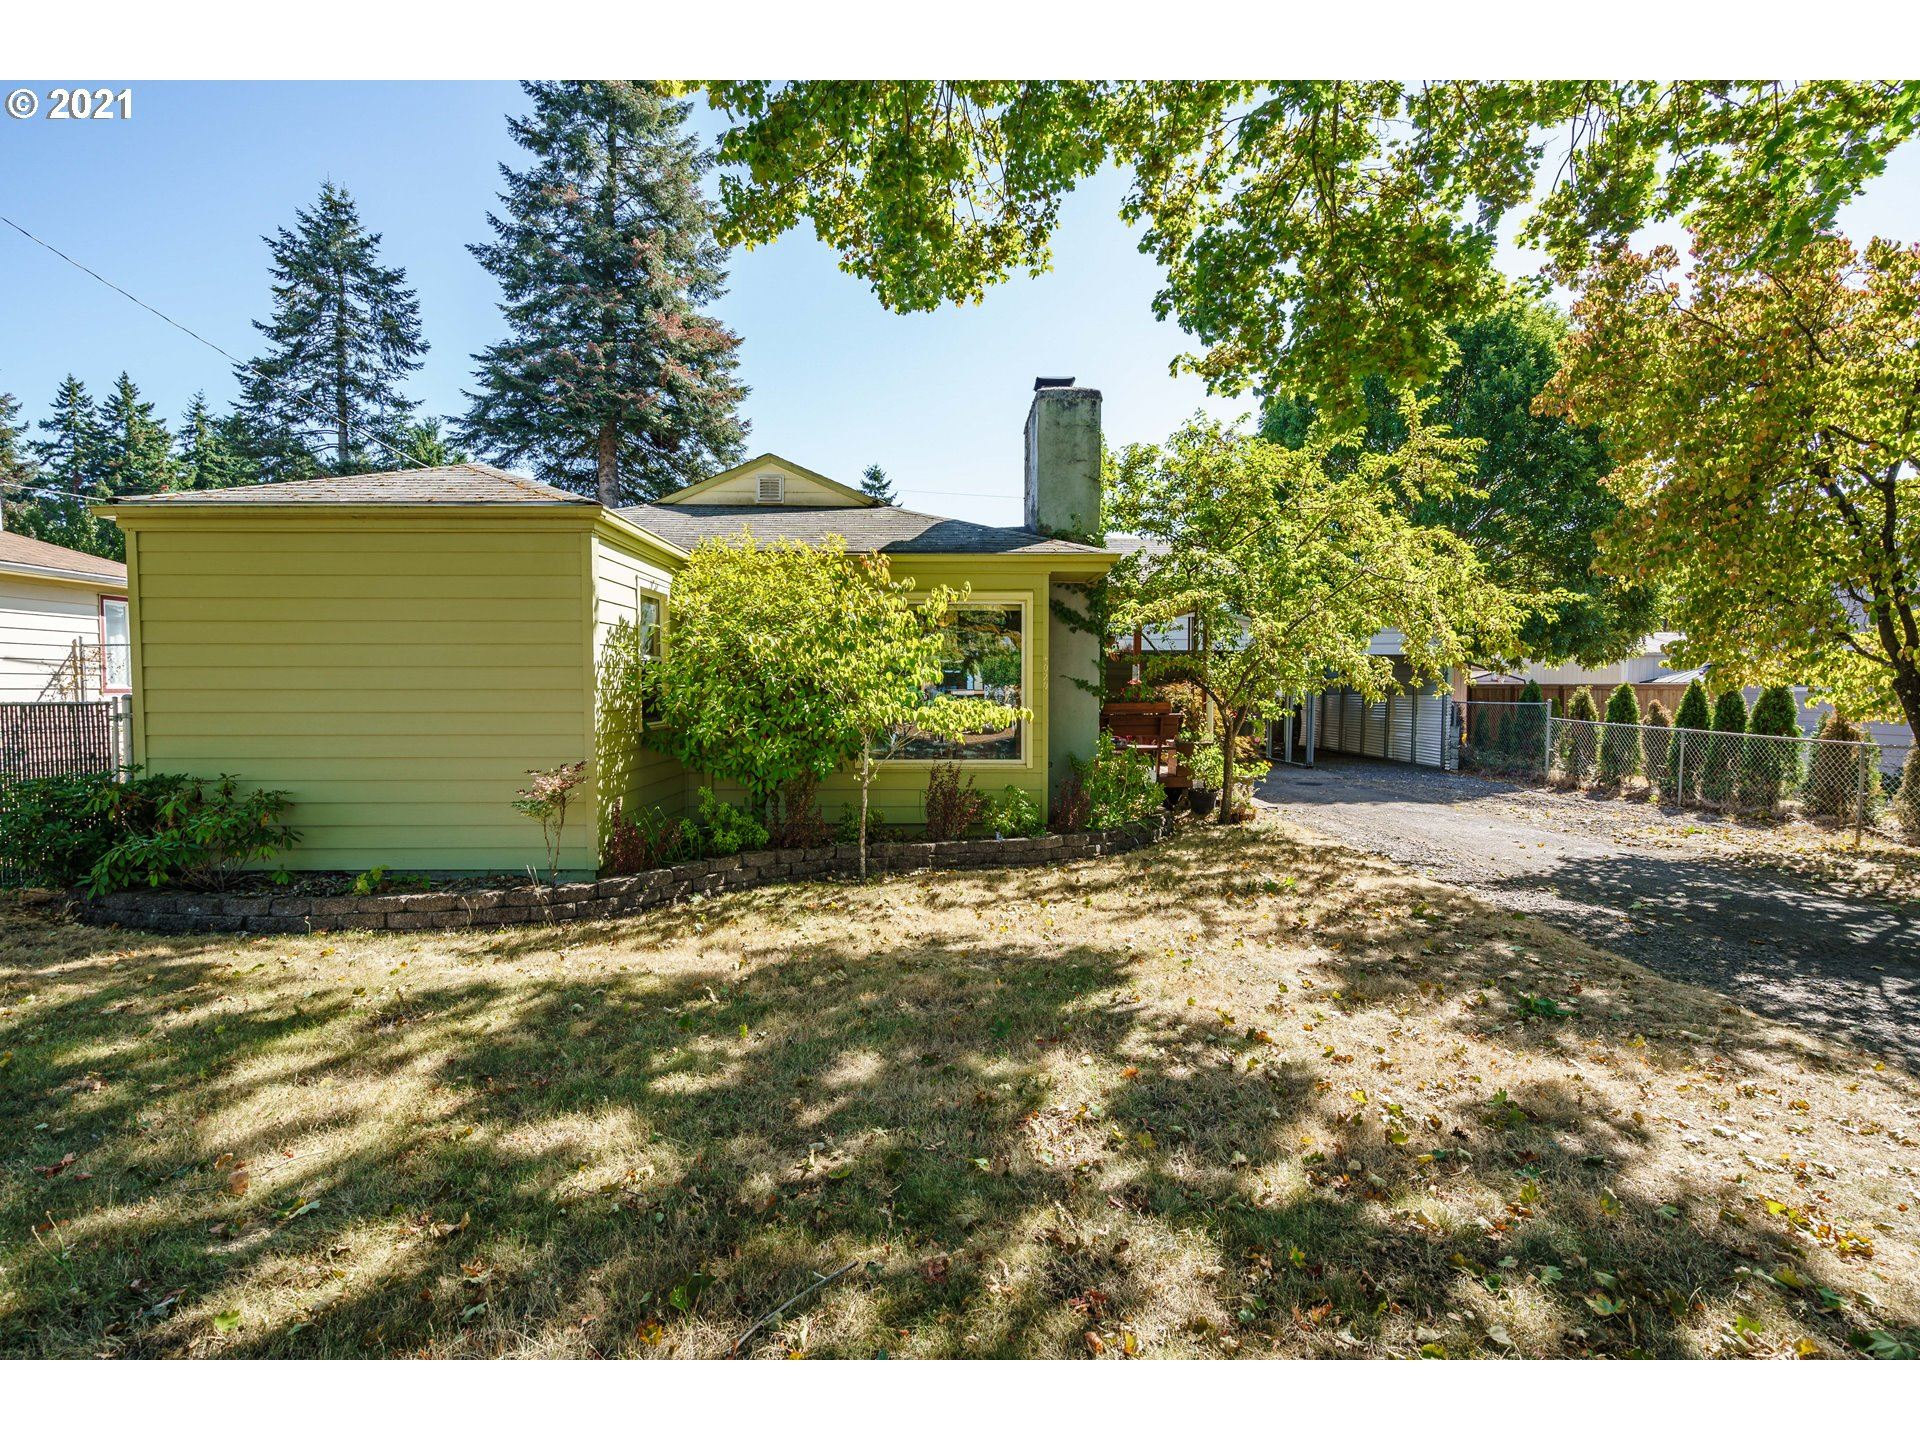 4020 SE 114TH AVE, Portland, OR 97266 - MLS#: 21264505